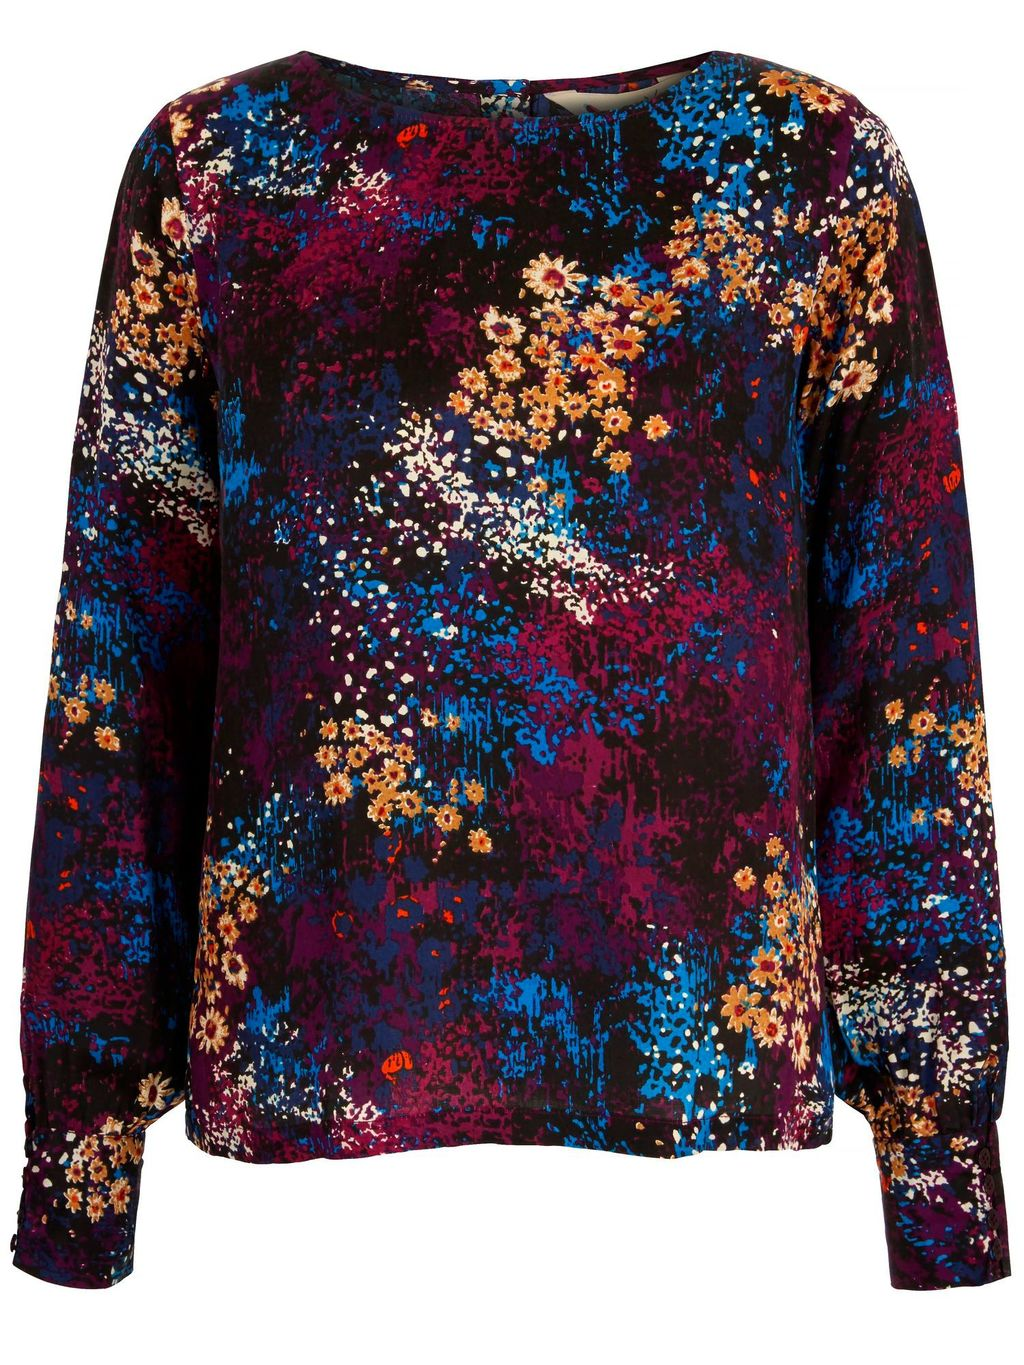 Distressed Floral Print Top, Black - neckline: round neck; secondary colour: purple; predominant colour: bright orange; occasions: casual, creative work; length: standard; style: top; fibres: viscose/rayon - 100%; fit: body skimming; sleeve length: long sleeve; sleeve style: standard; pattern type: fabric; pattern: florals; texture group: jersey - stretchy/drapey; pattern size: big & busy (top); multicoloured: multicoloured; season: a/w 2015; wardrobe: highlight